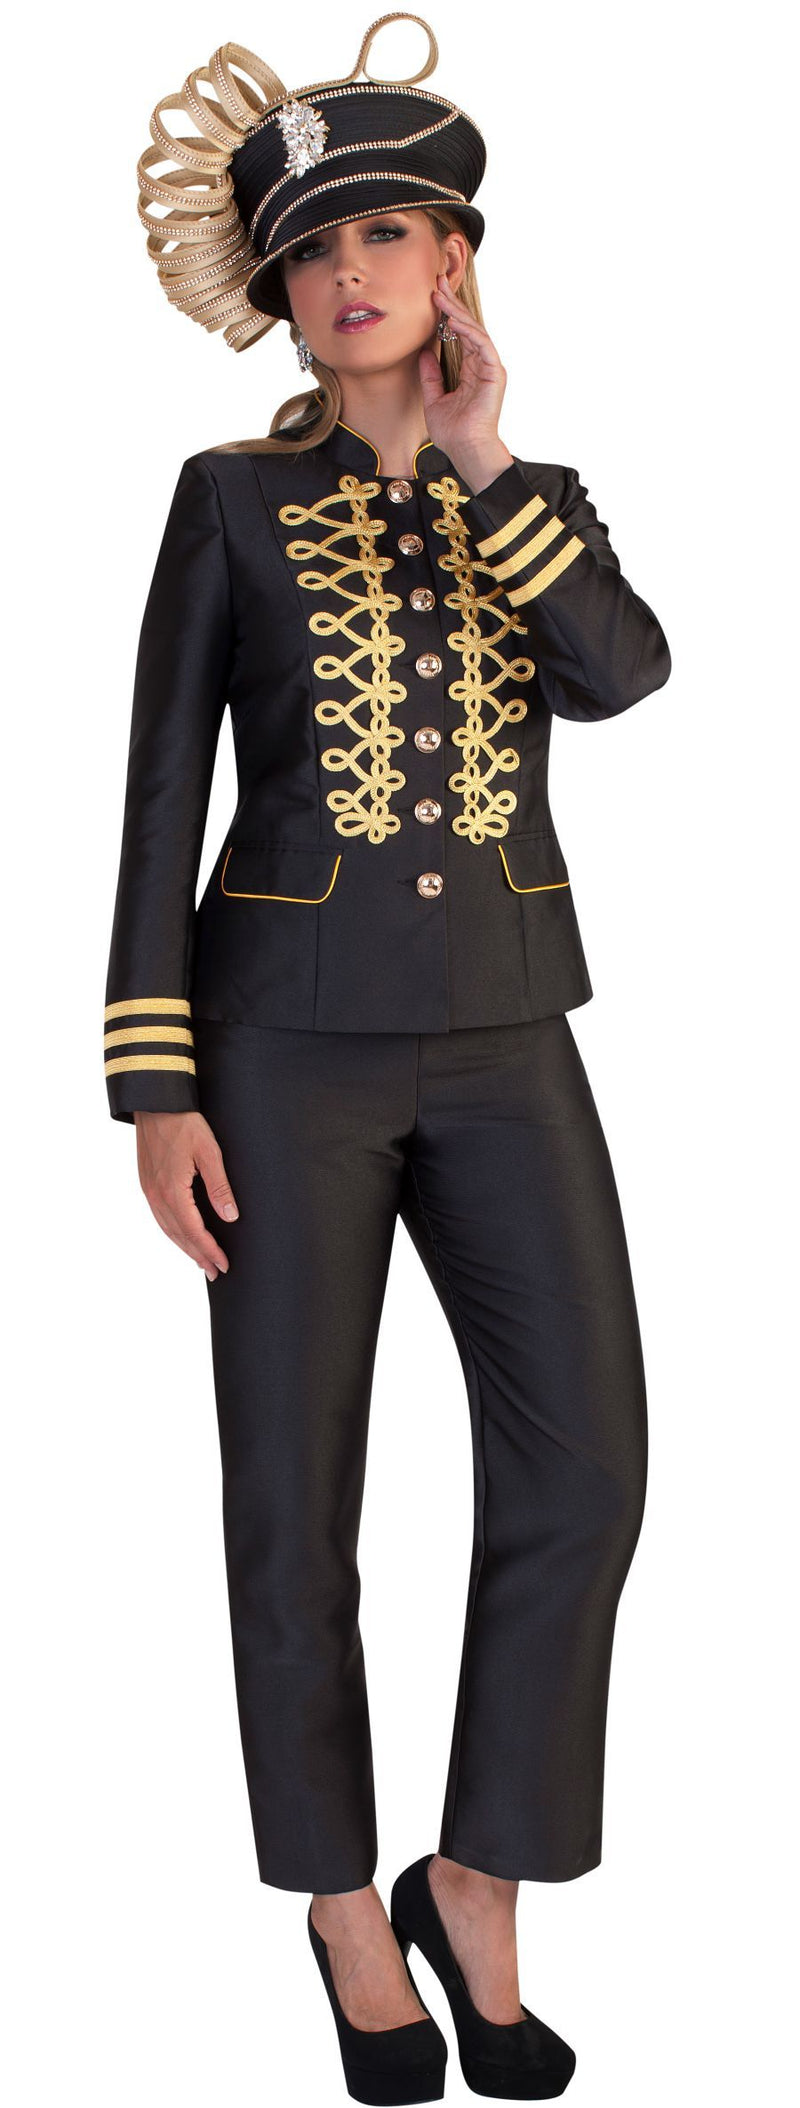 Tally Taylor Suit 4642-Black/Gold - Church Suits For Less